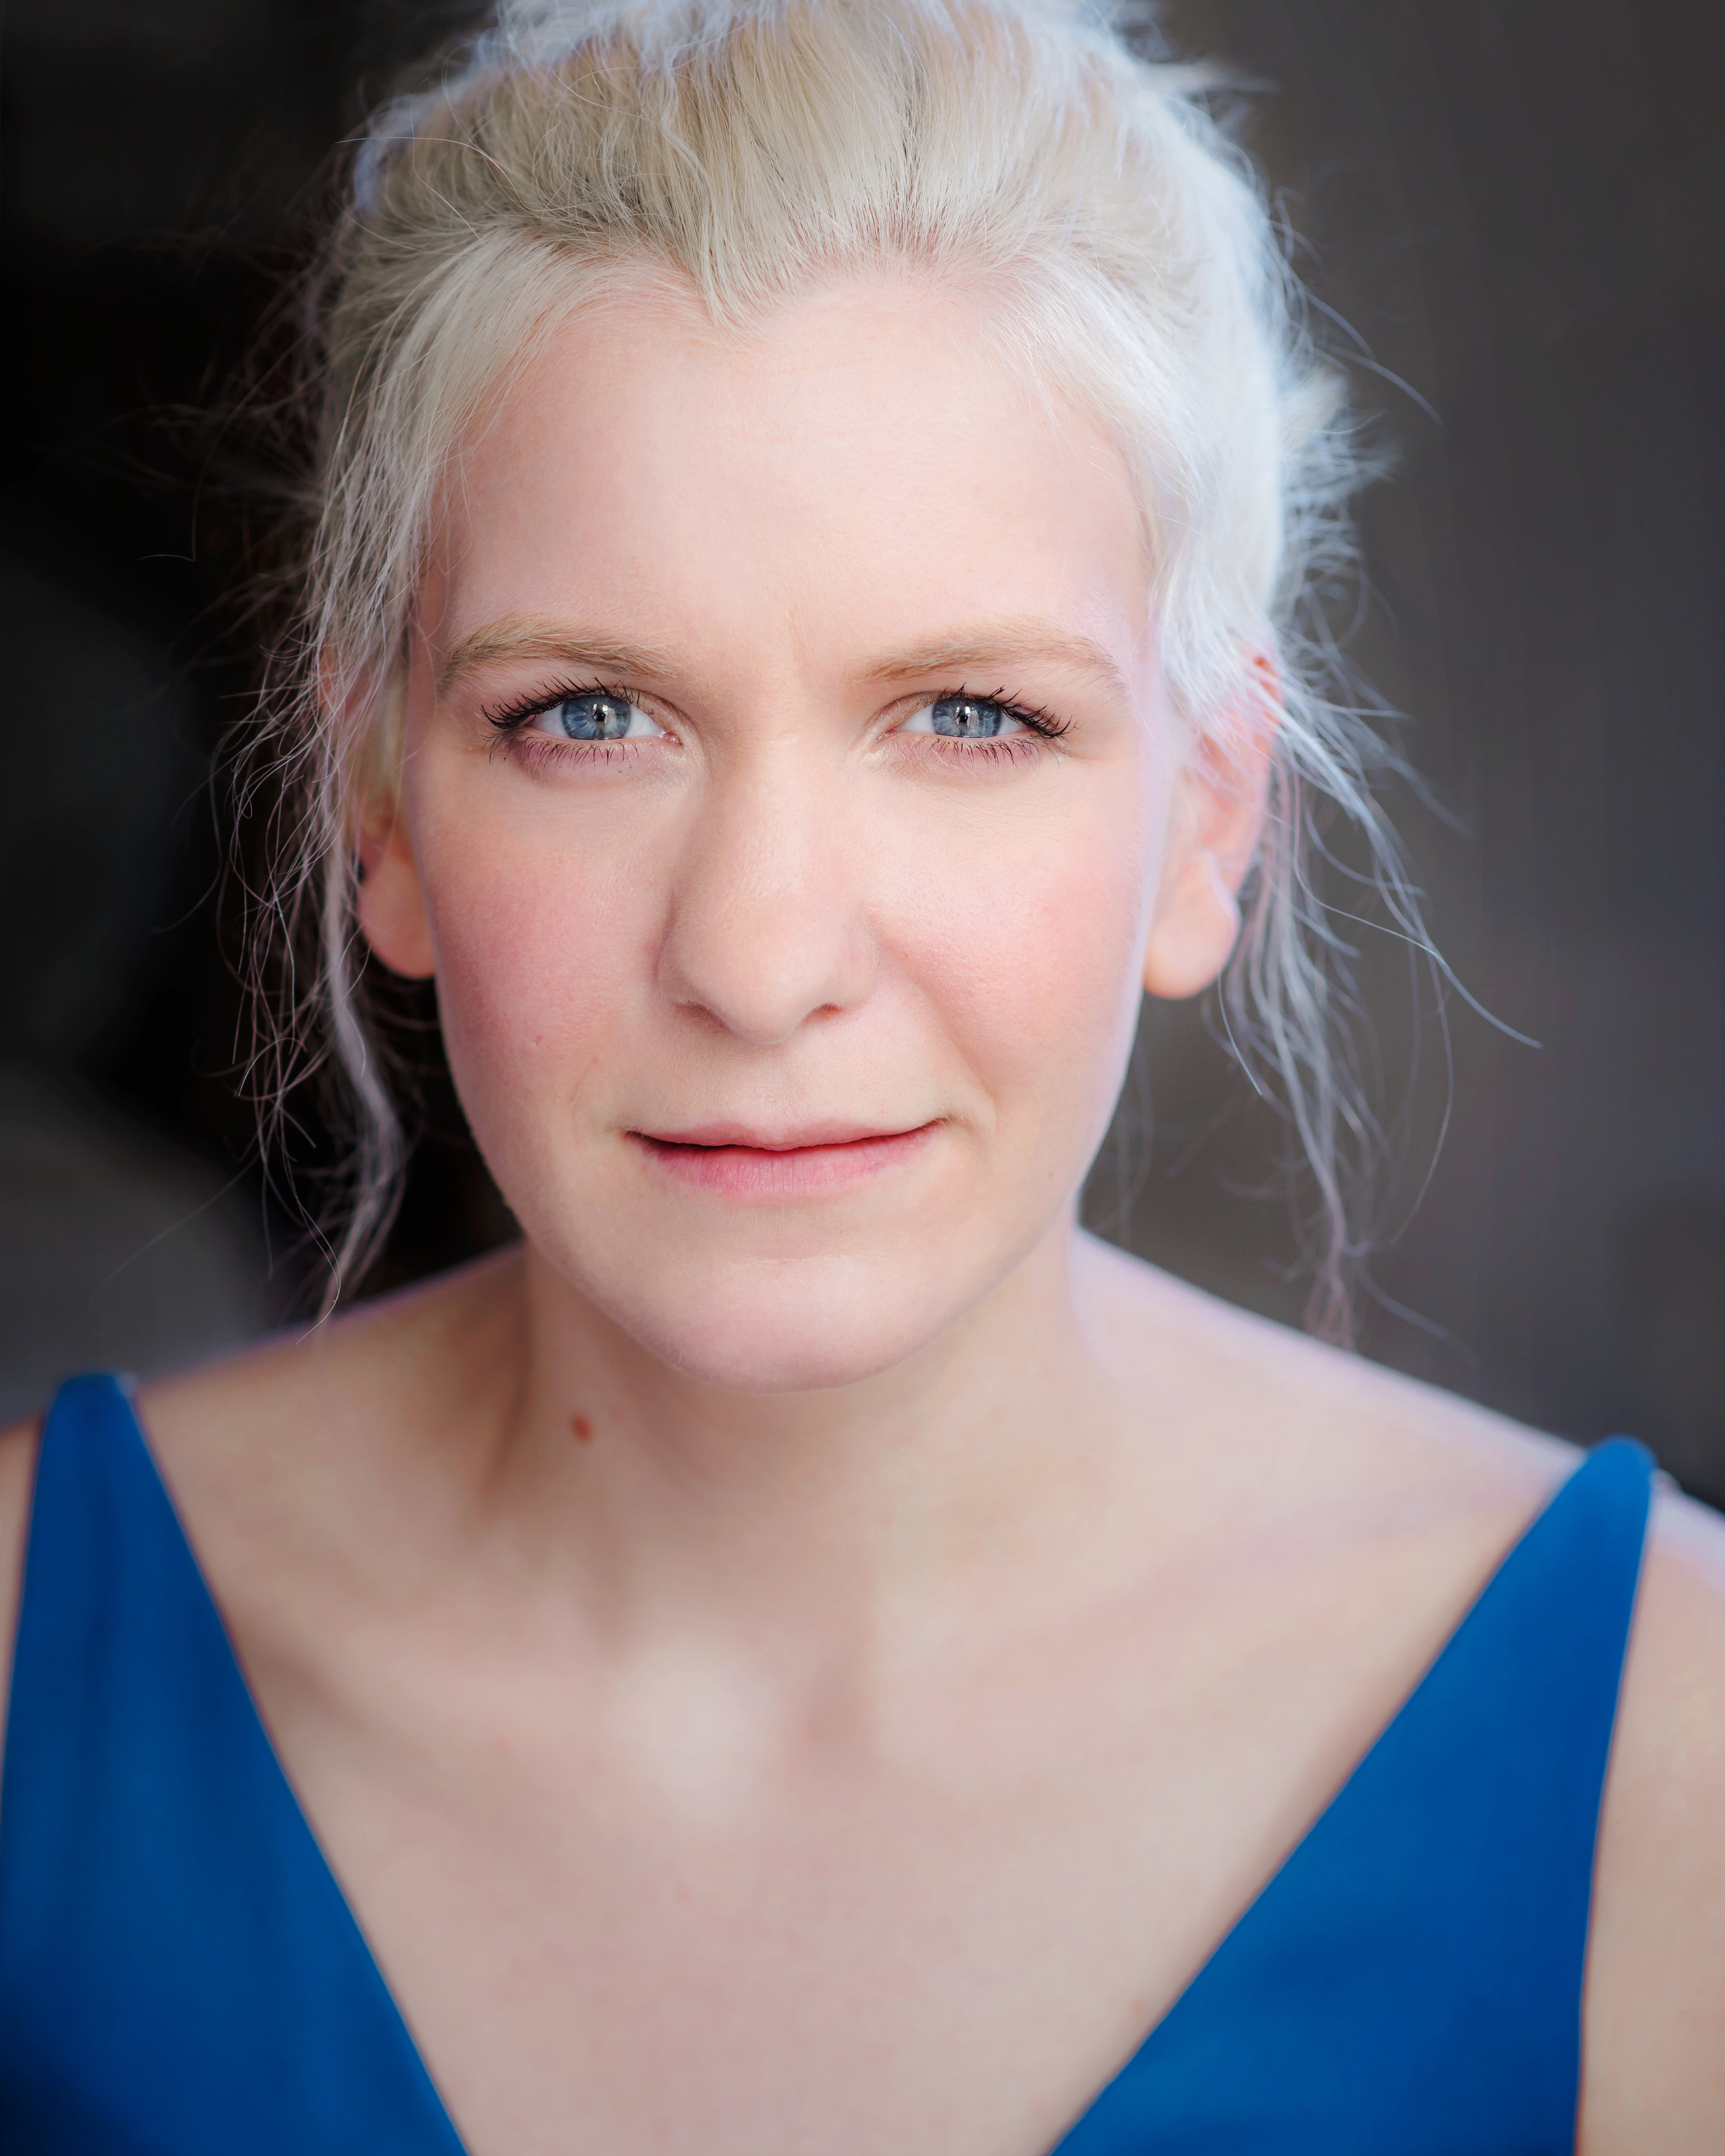 Kat Haan -  Core Artist   Directed  the touring production of  Kara Sevda  as well as starting as  Celia  in the Toronto Fringe Festival production. Kat also directed the original production at the 2016 Edinburgh Fringe Festival.